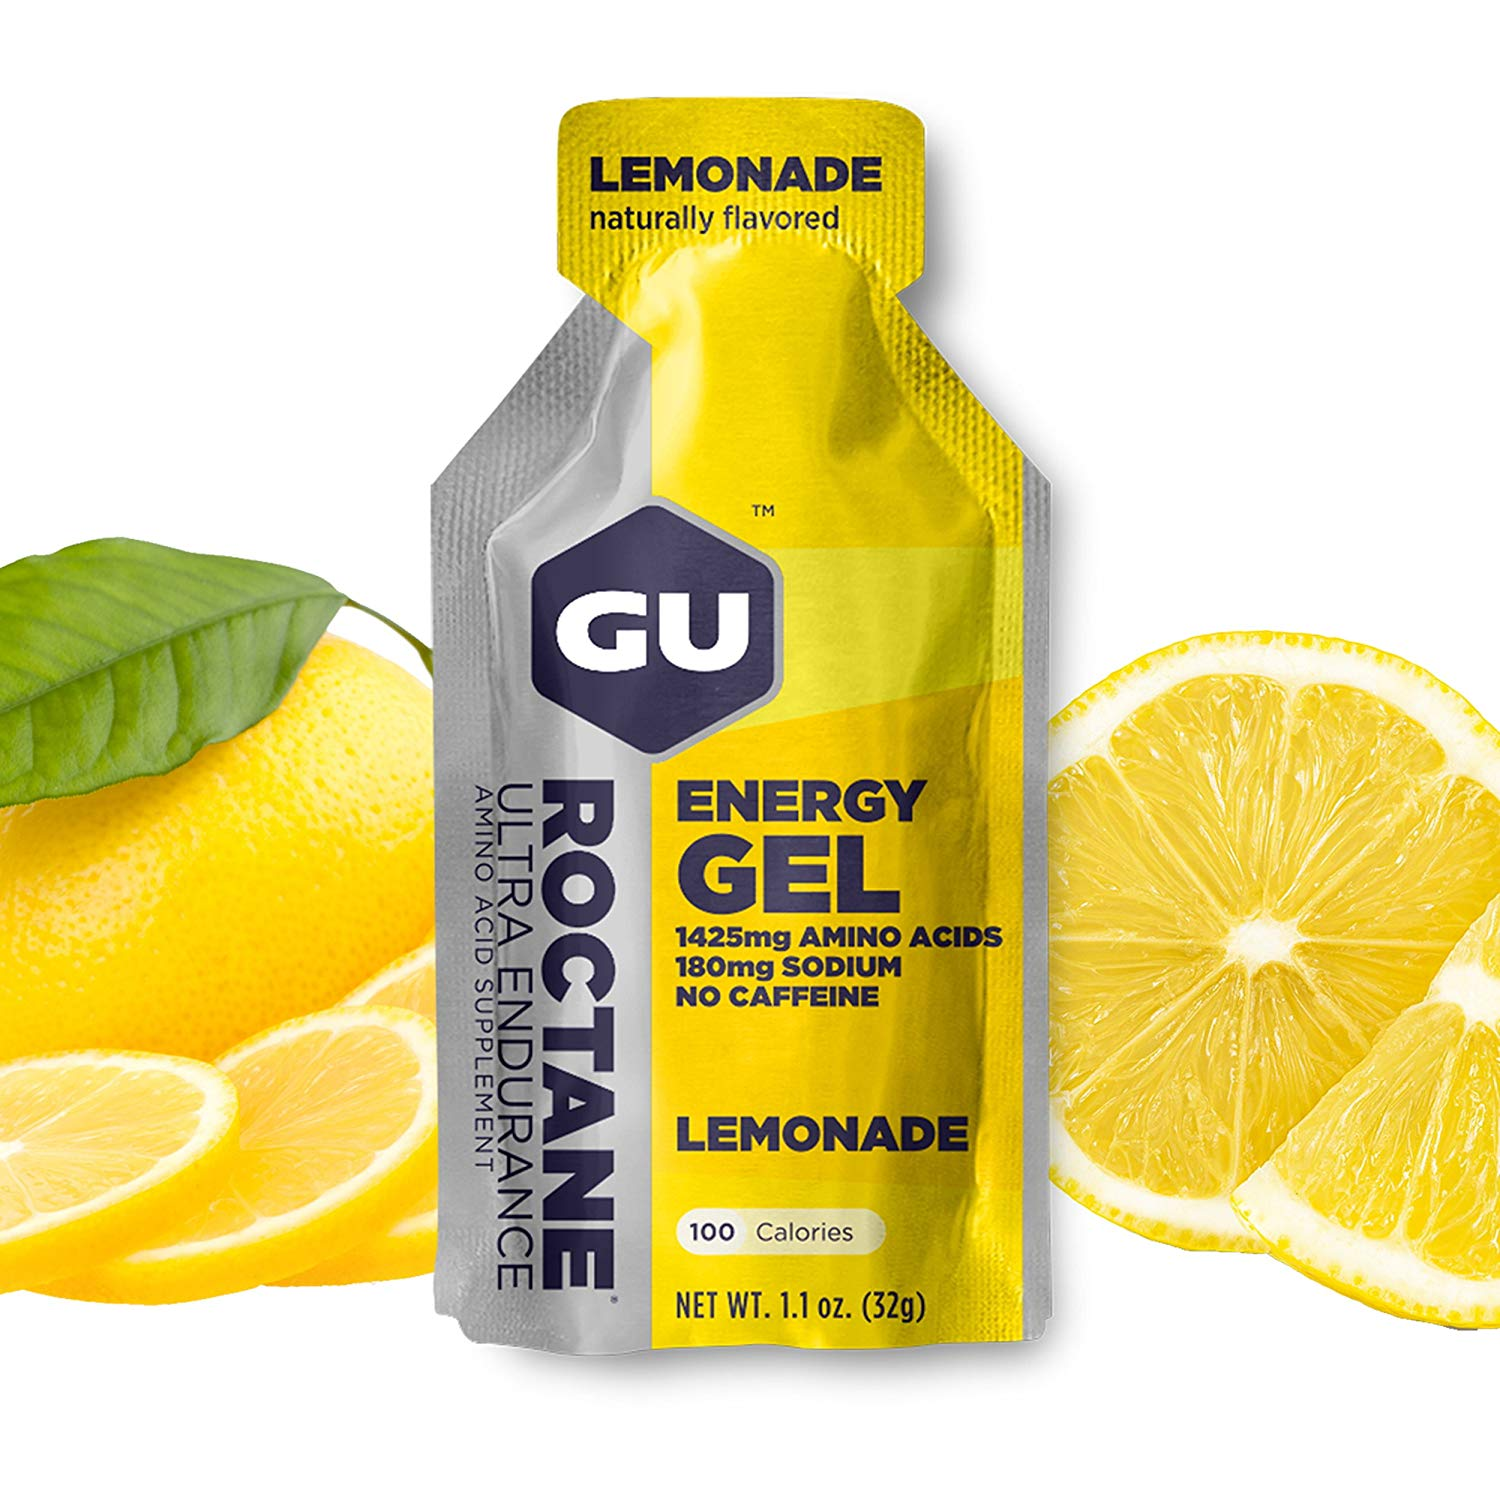 GU Energy Roctane Gel lemonade